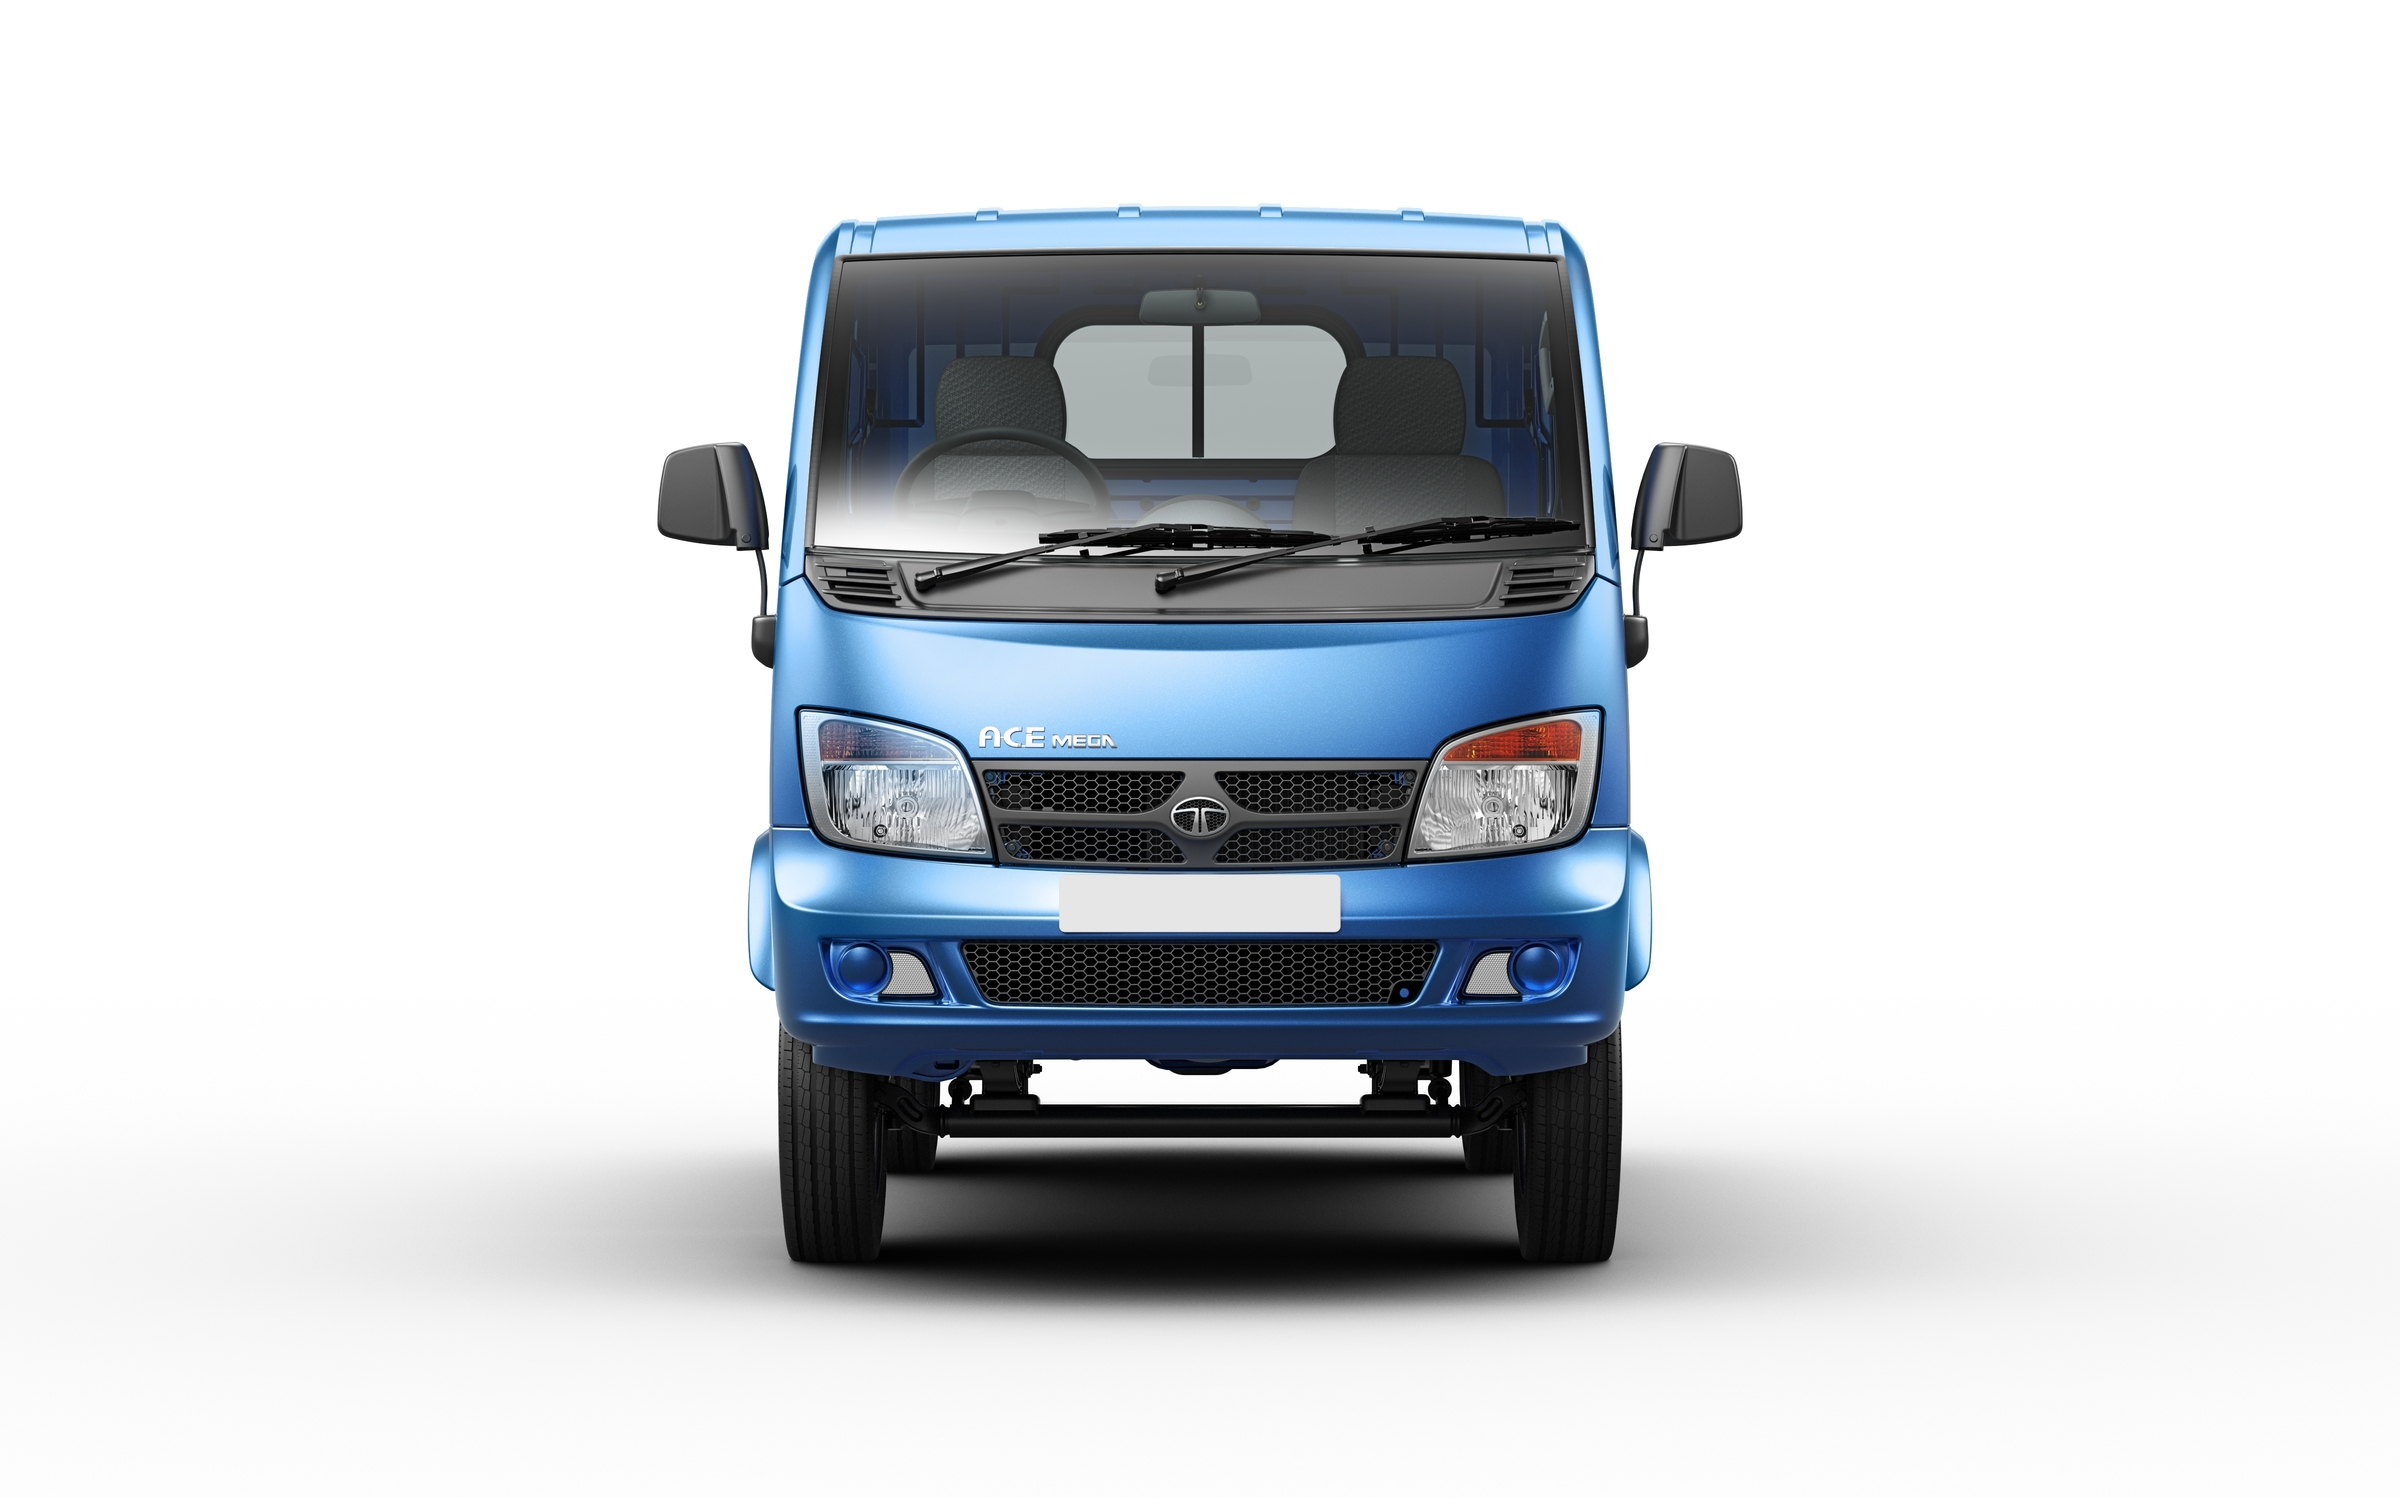 tata ace The tata ace is a mini truck launched in may 2005 by tata motors in india it is in competition with the prevalent three-wheeled goods carriers from bajaj auto, piaggio, mahindra and force motors.